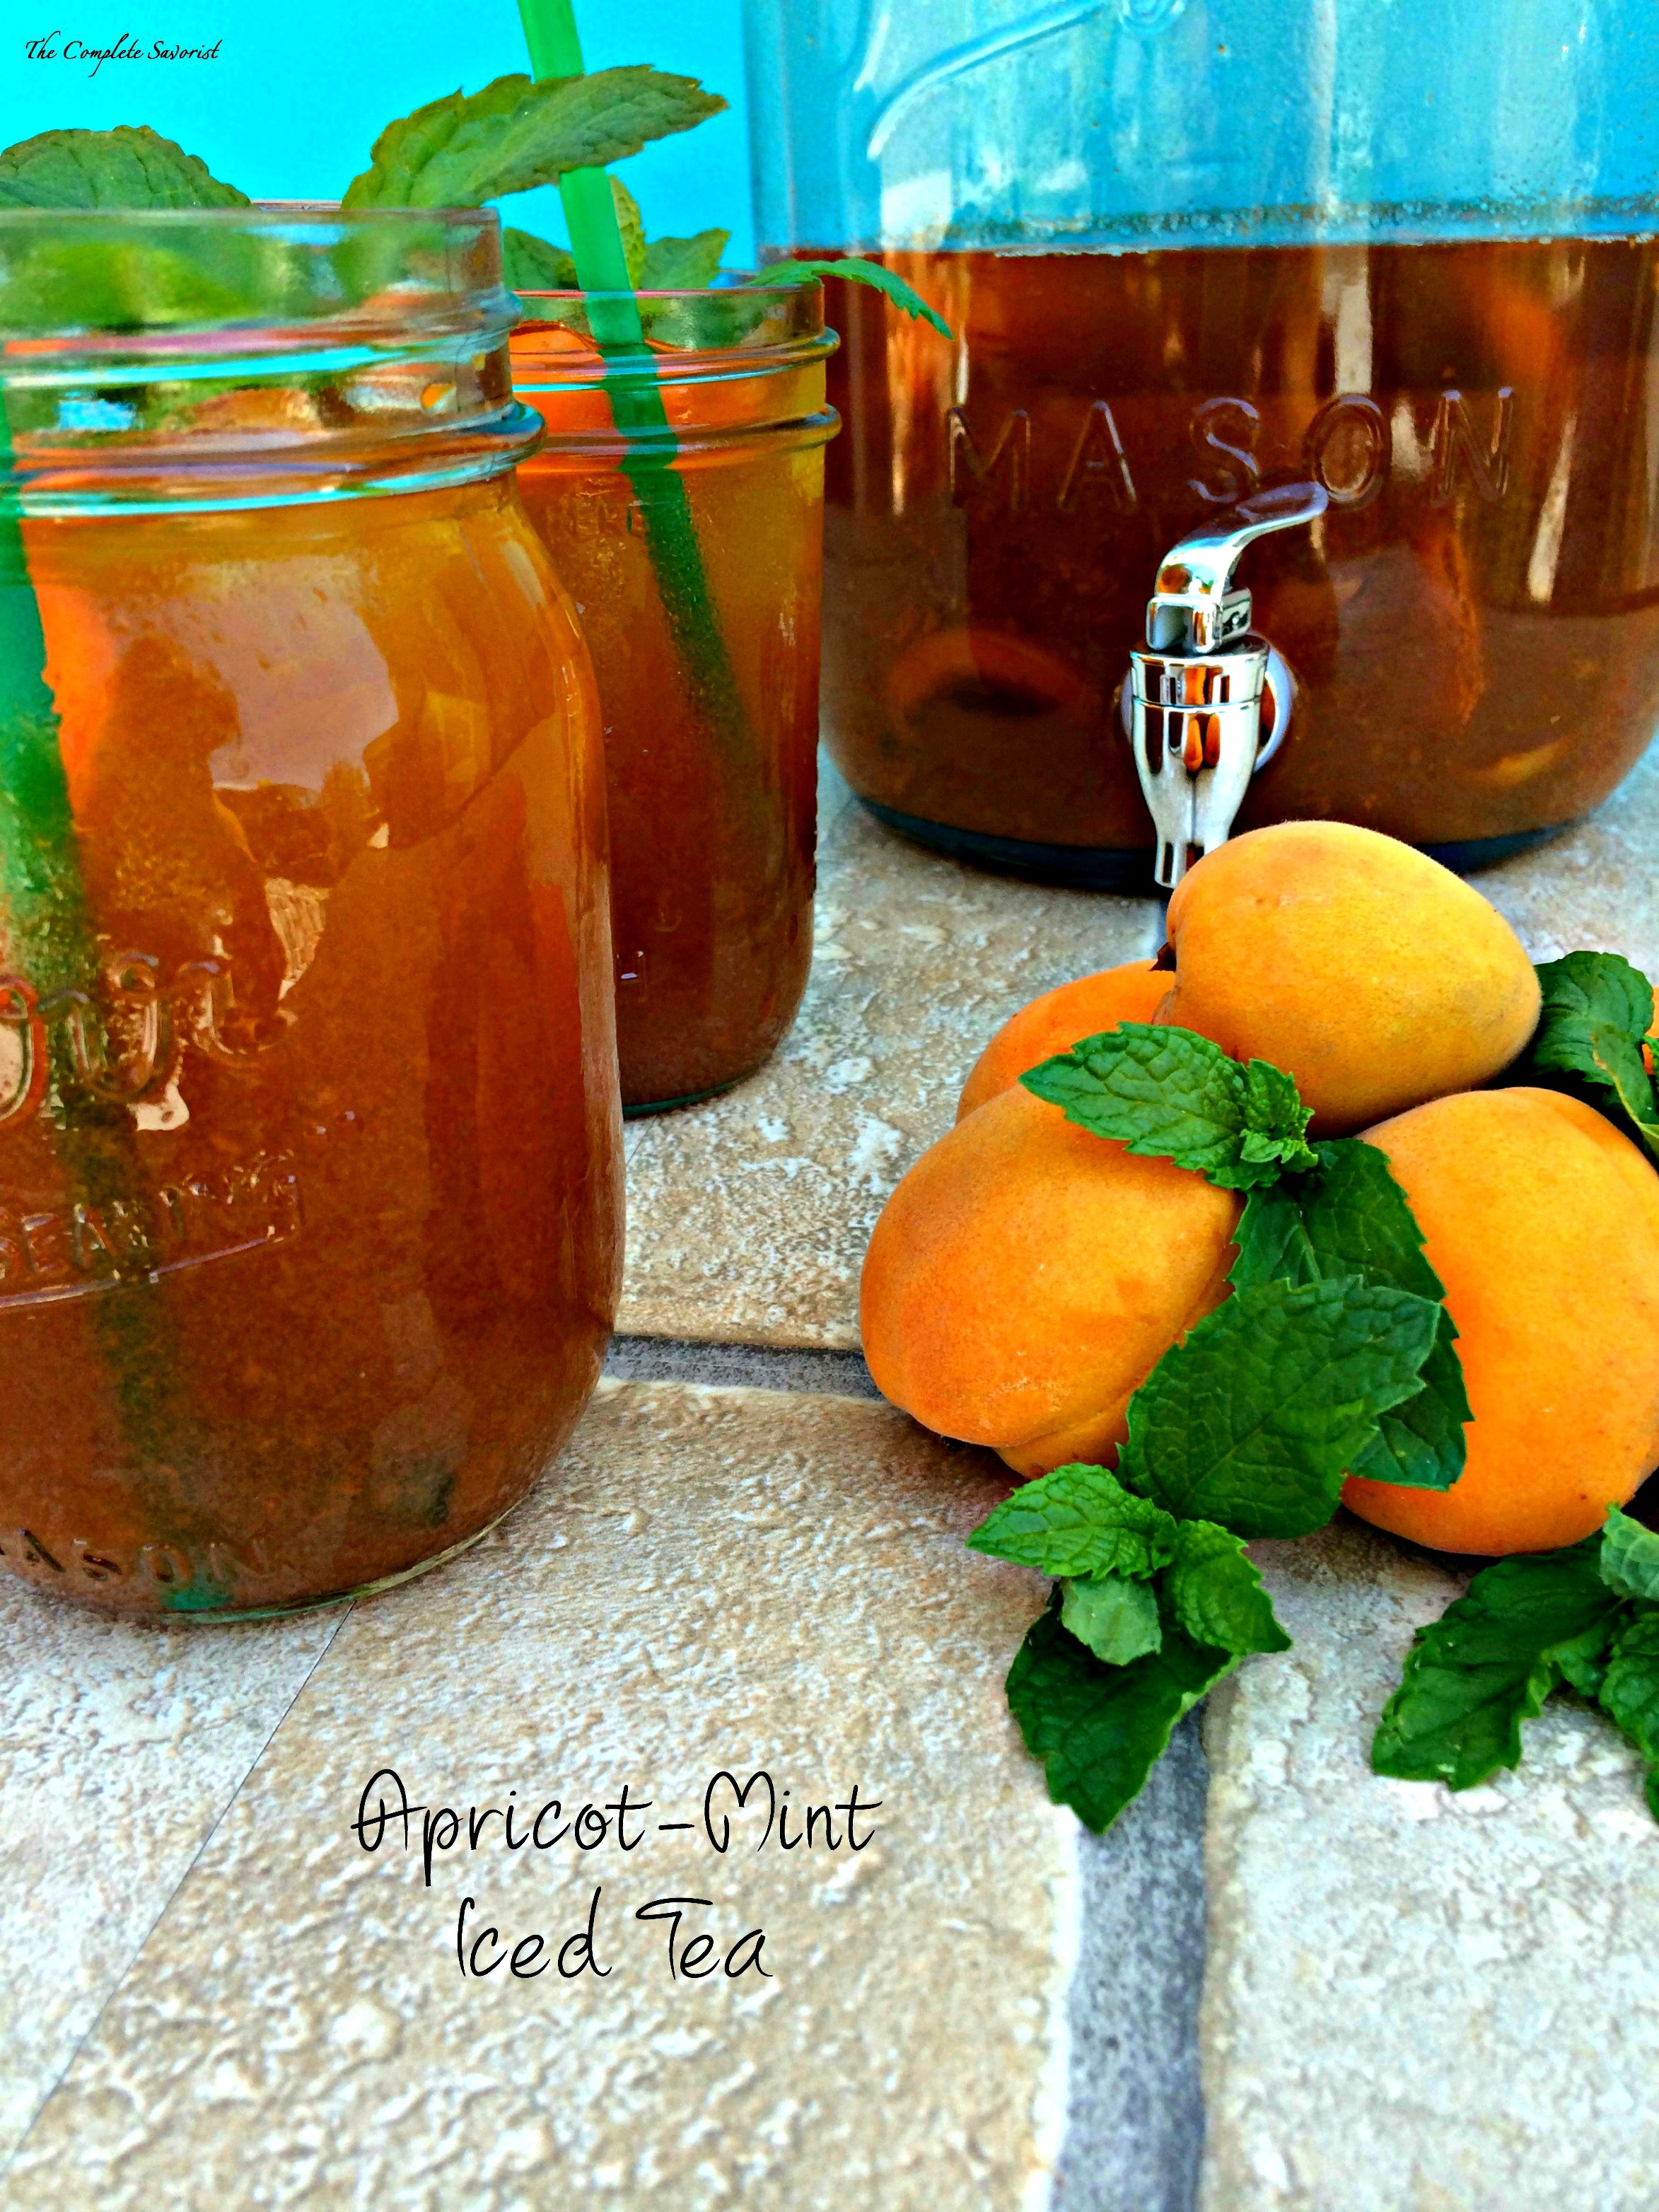 Apricot-Mint Iced Tea - The Complete Savorist